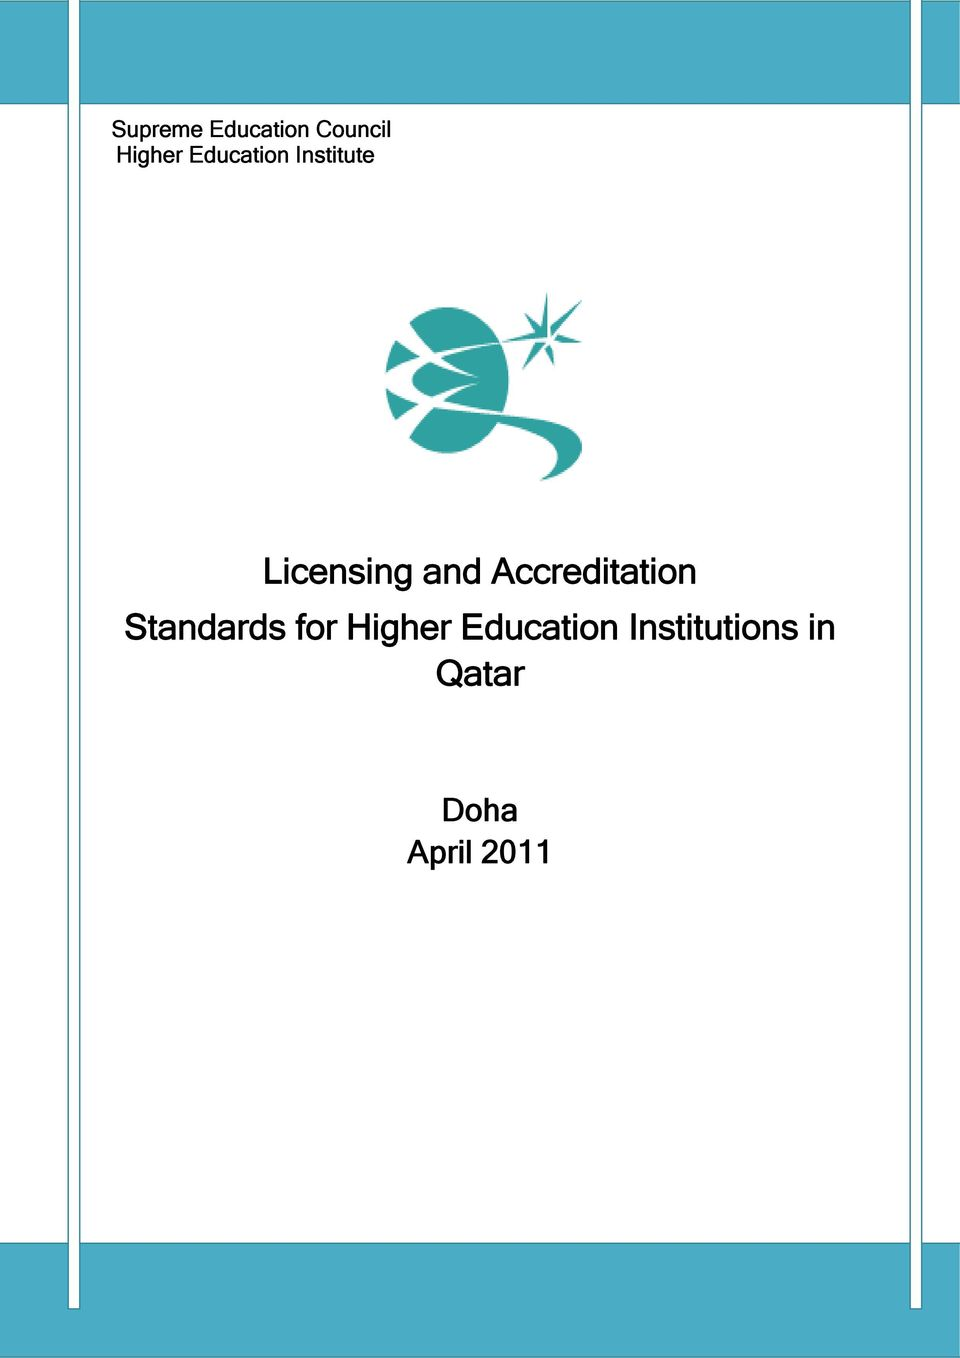 Accreditation Standards for Higher